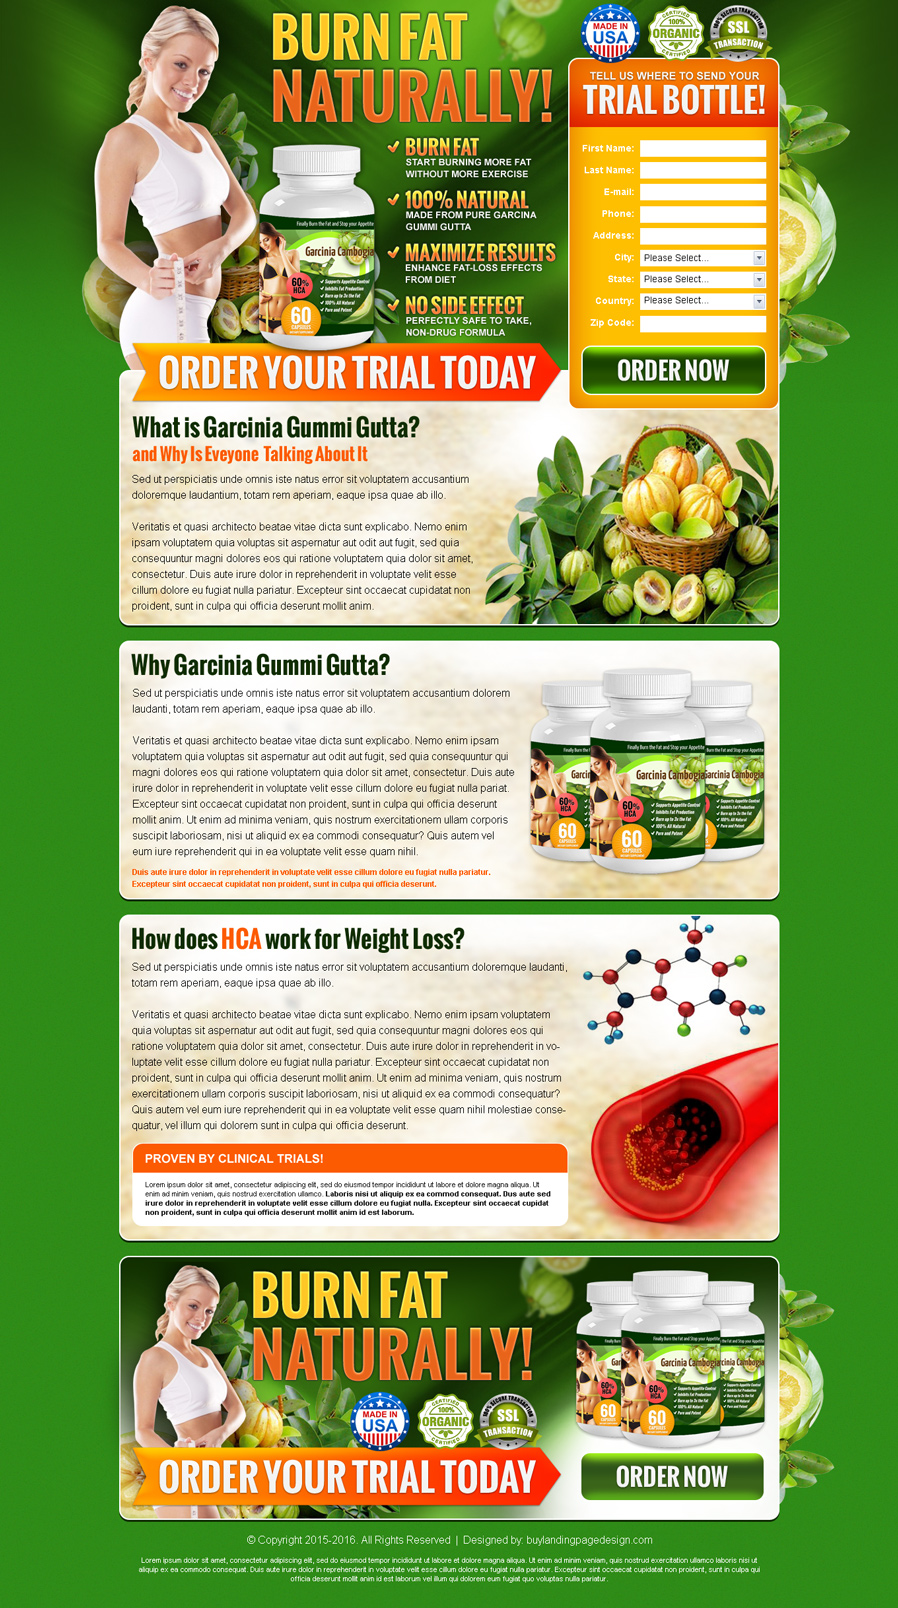 garcinia gummi gutta product selling converting lead gen landing page design templates from https://www.buylandingpagedesign.com/buy/garcinia-gummi-gutta-product-selling-converting-lead-gen-landing-page/1585